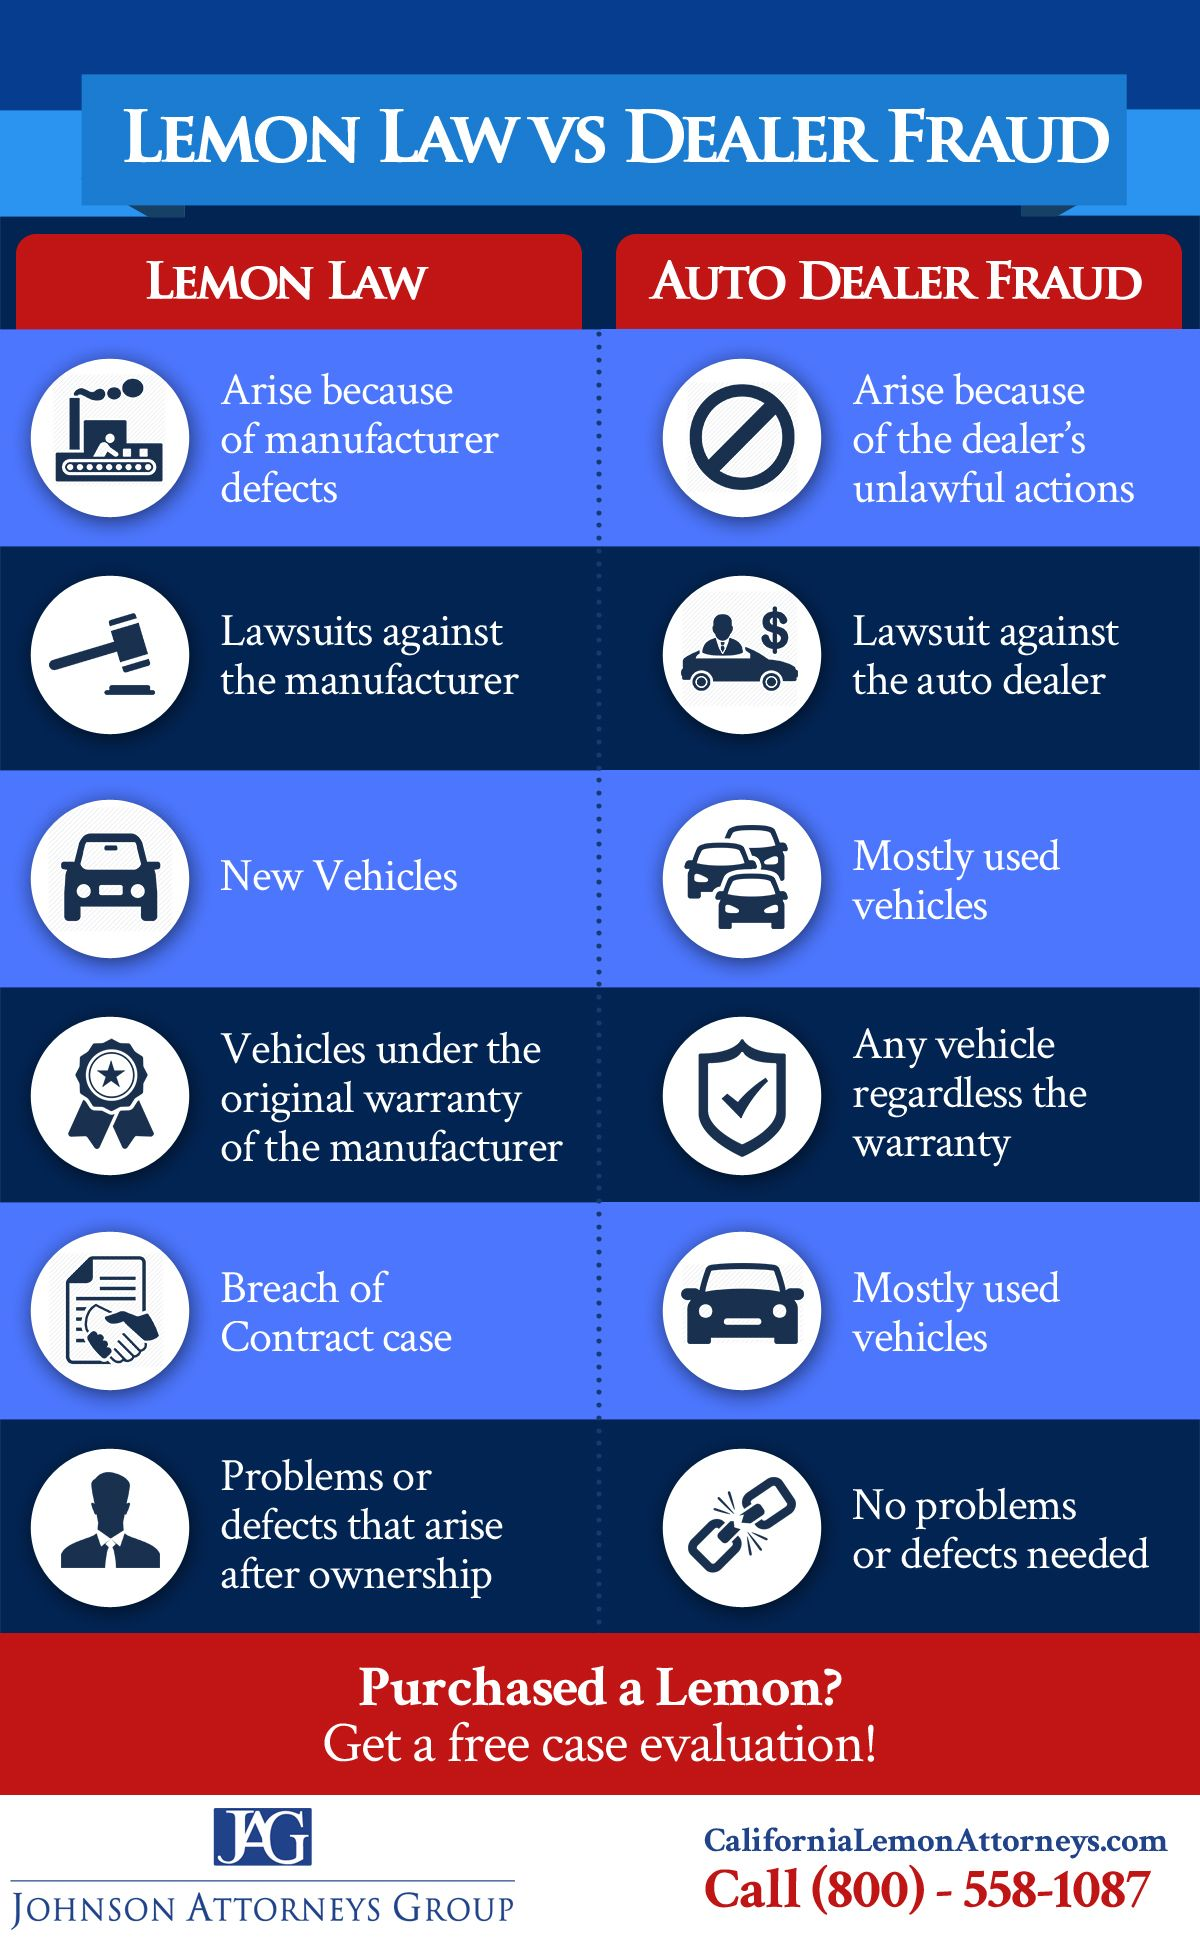 Lemon Law California >> Difference Between Lemon Law And Auto Dealer Fraud Cases